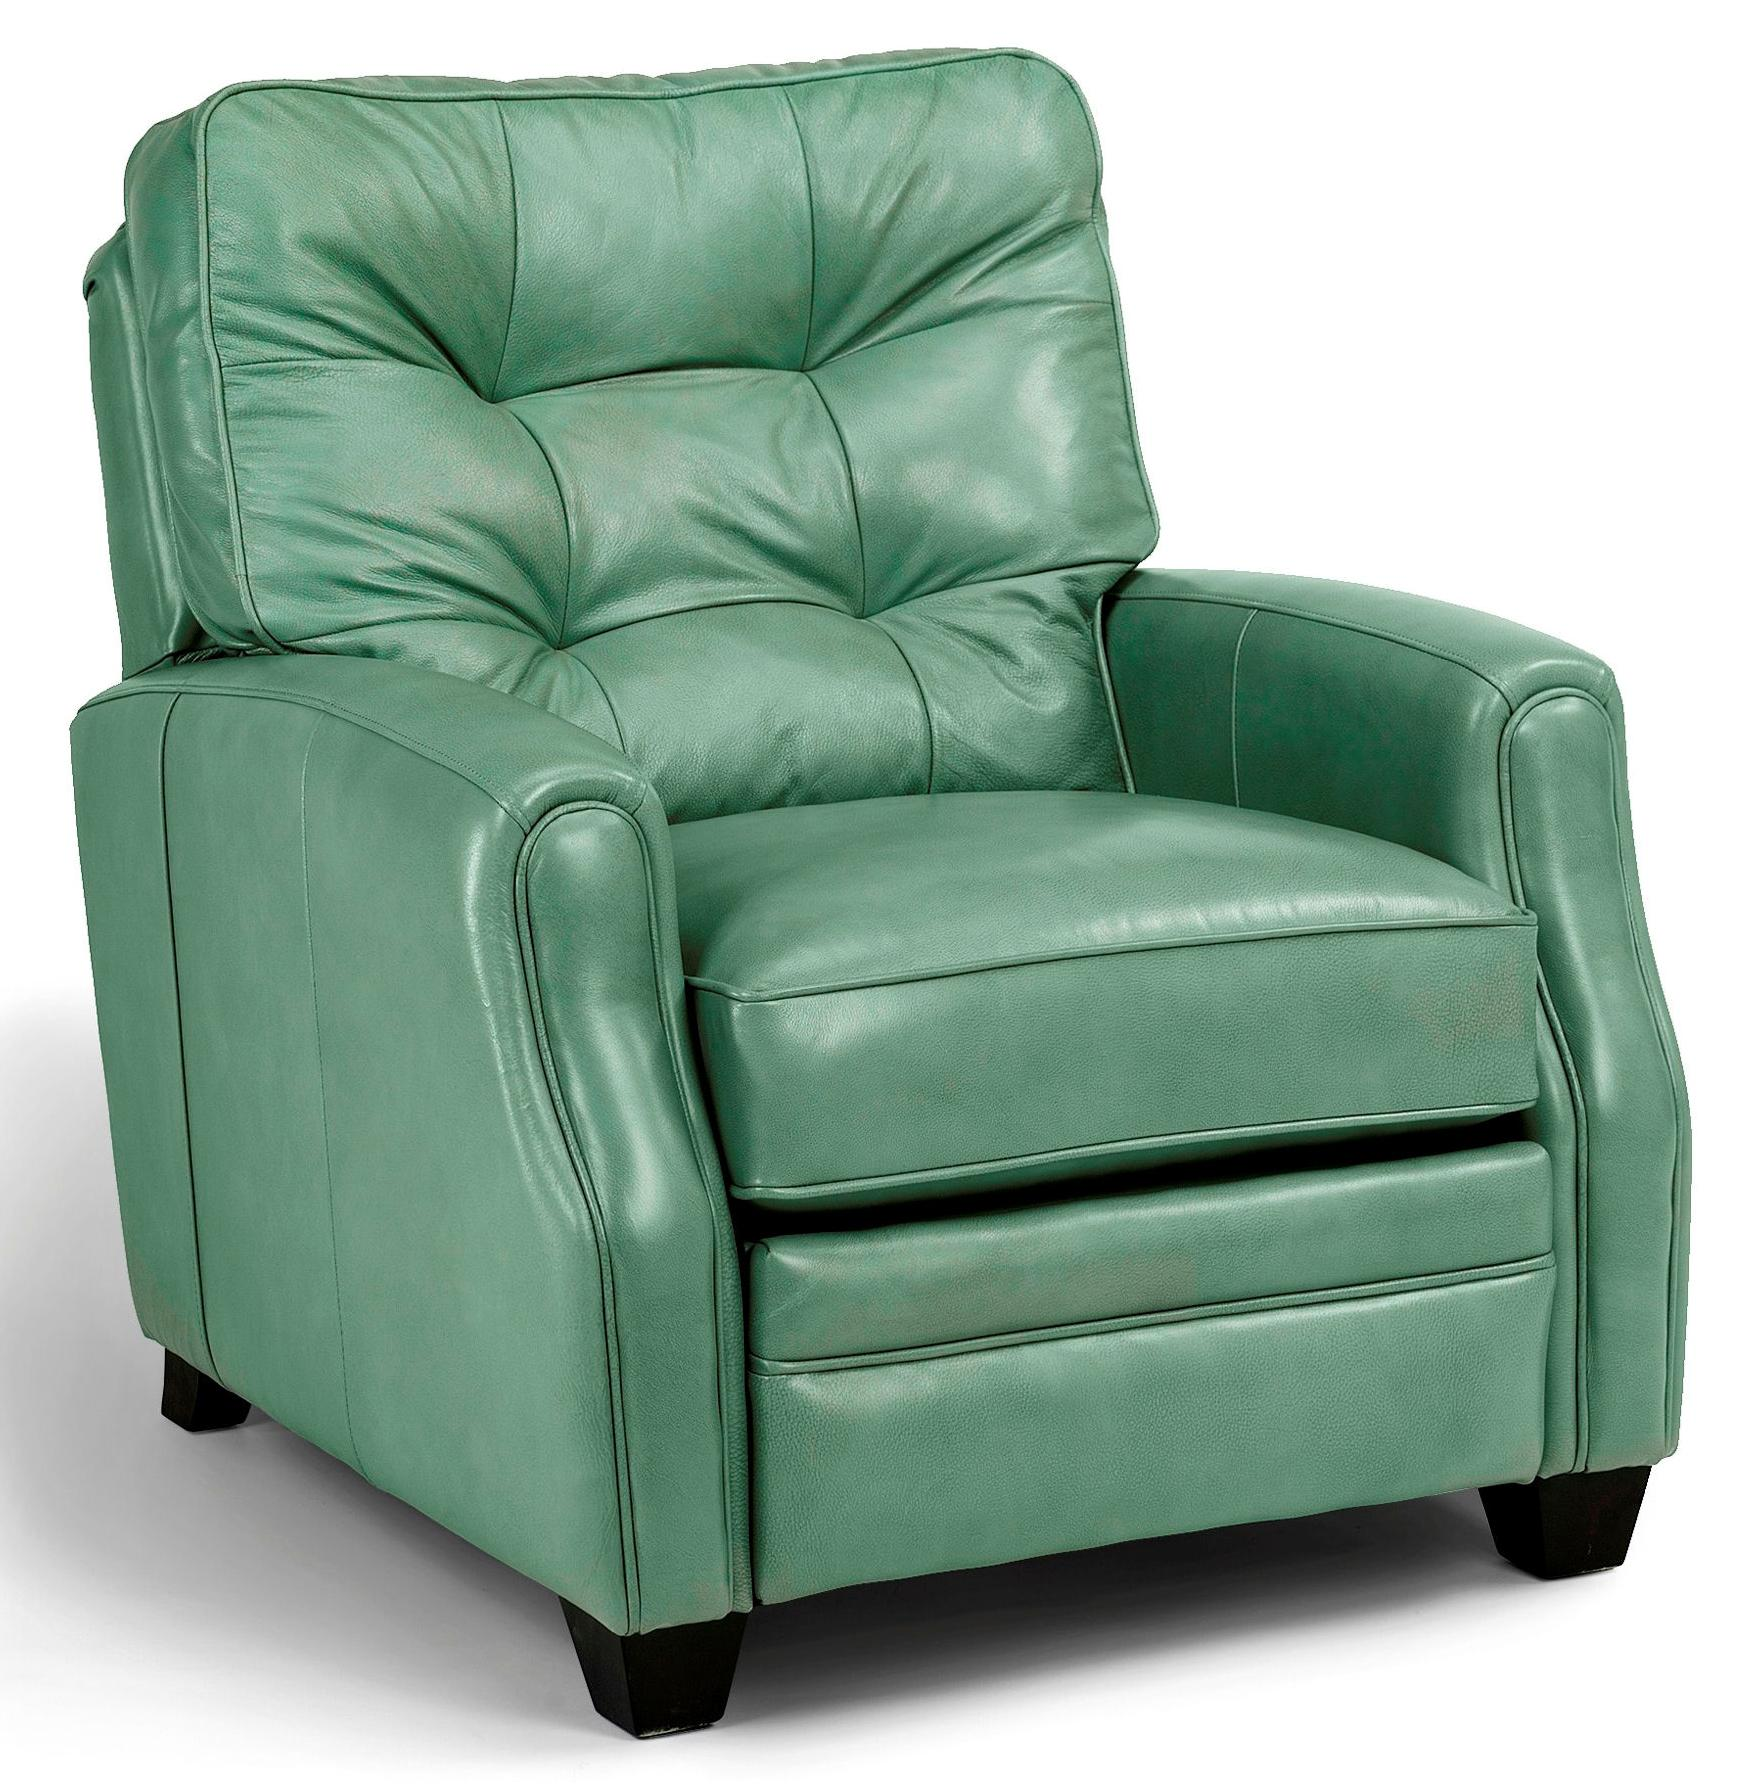 Most Comfortable Couch >> Awesome High End Recliners | HomesFeed